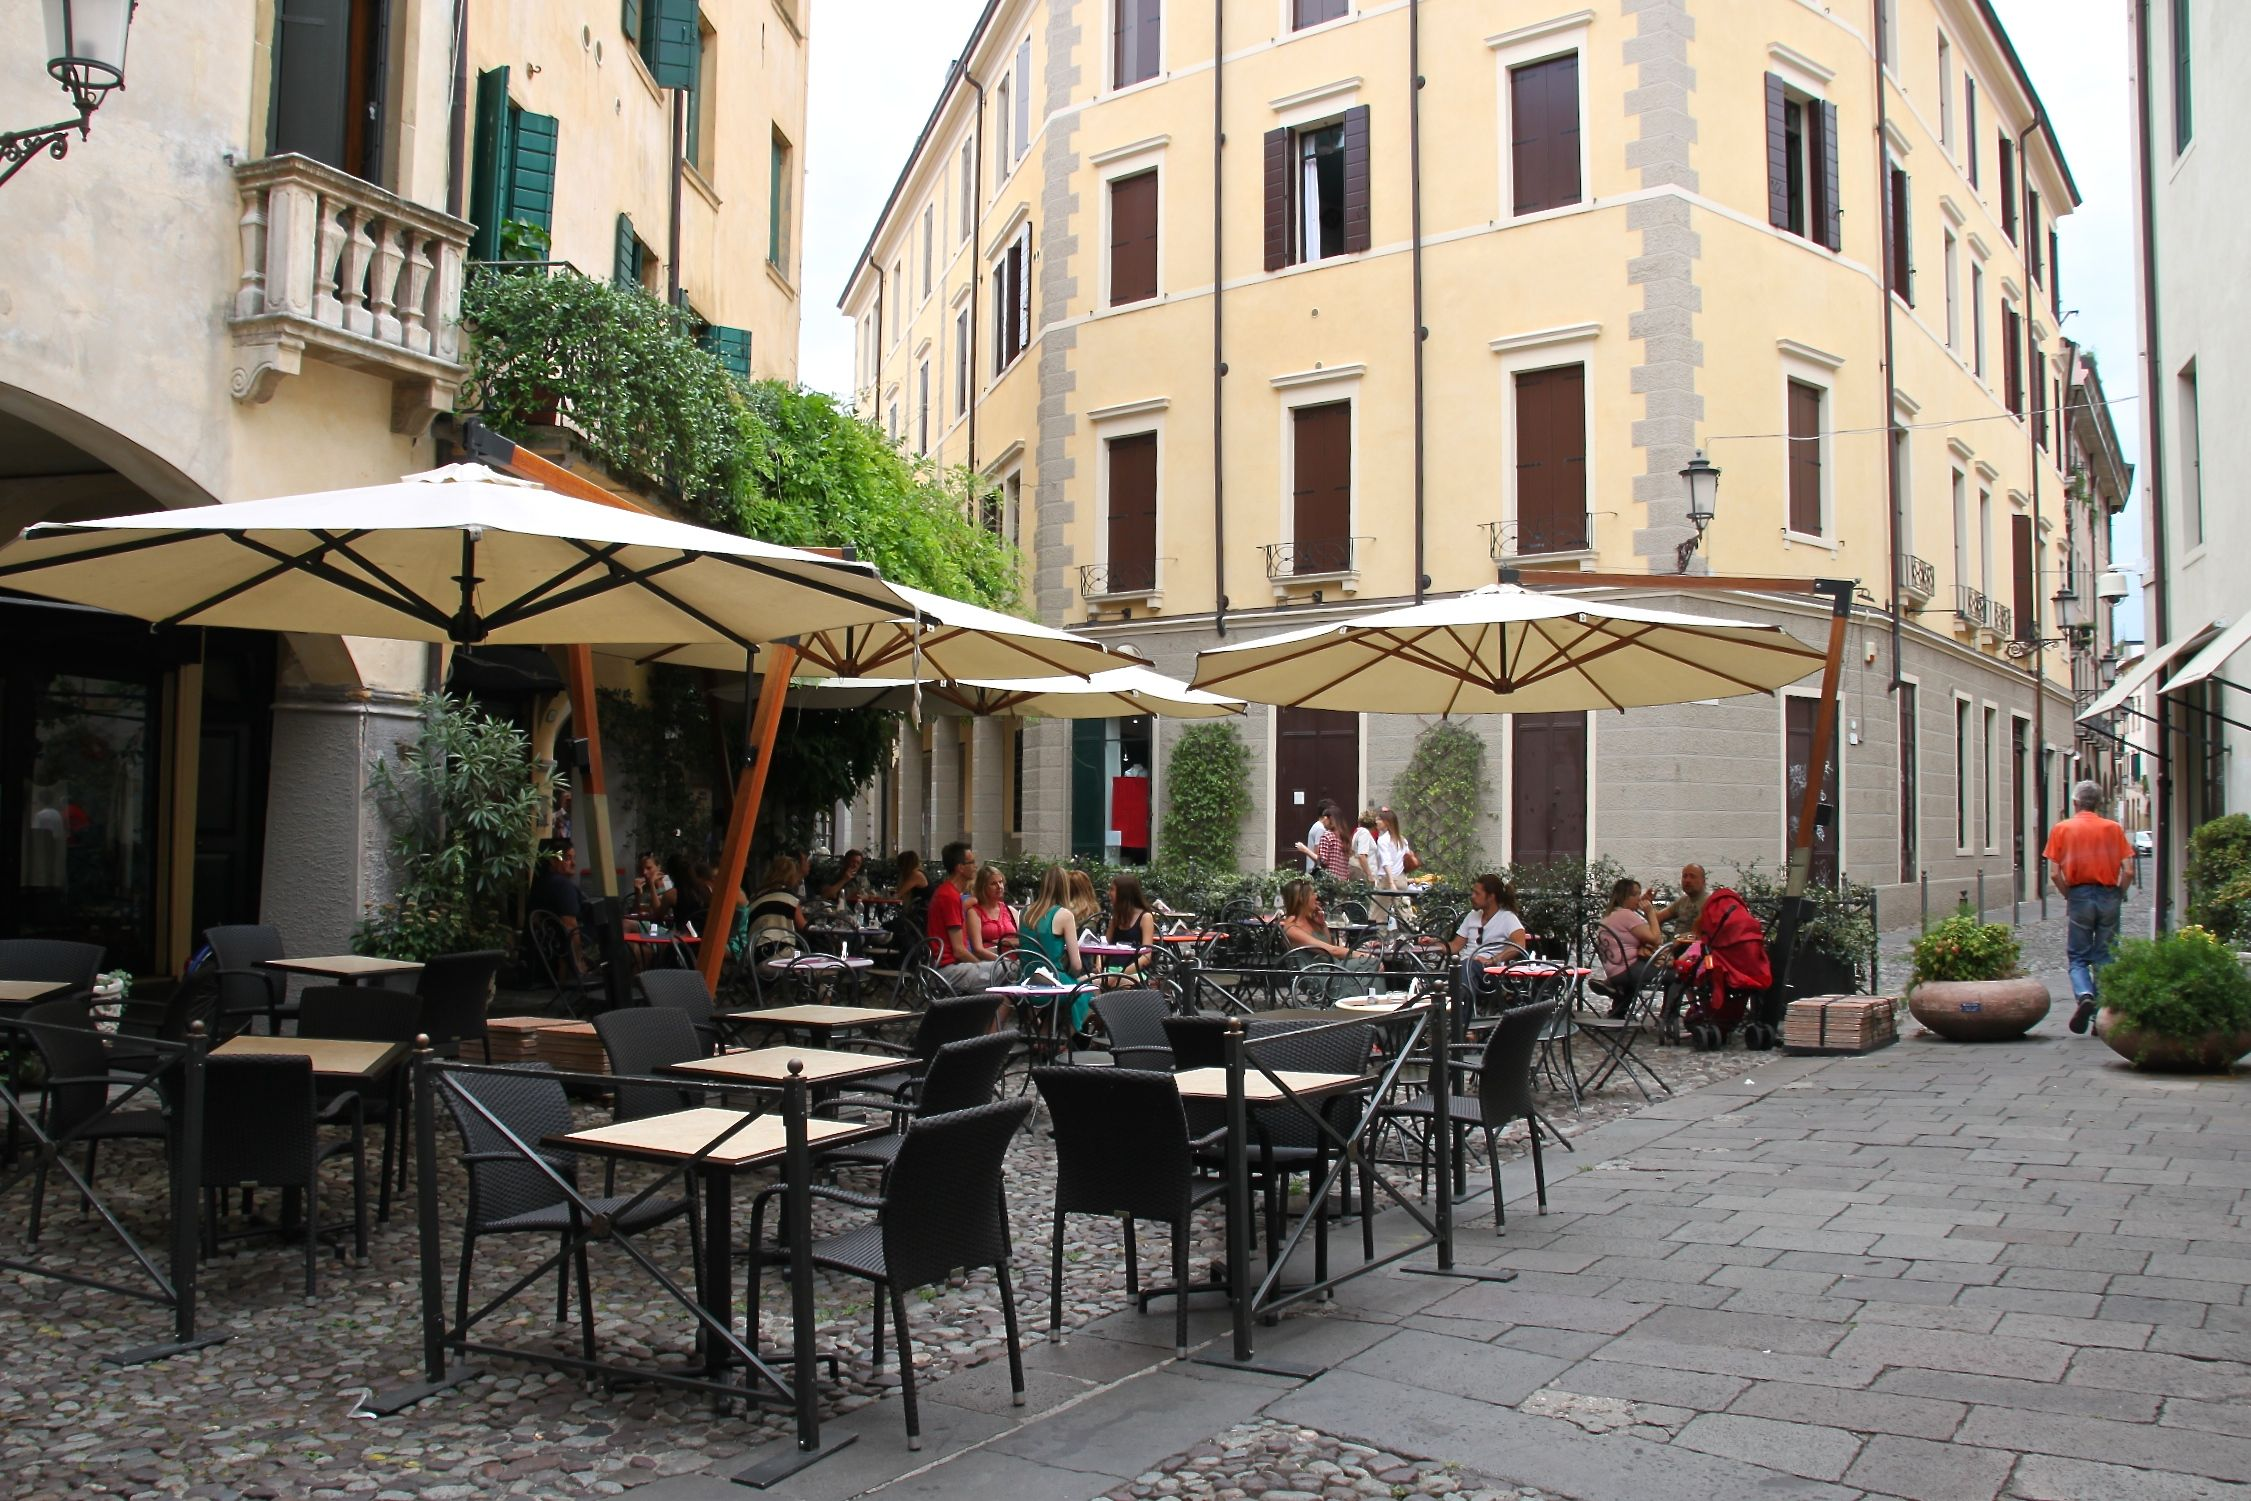 Padua ghetto is great for quiet little cafes in its cobbled courtyards